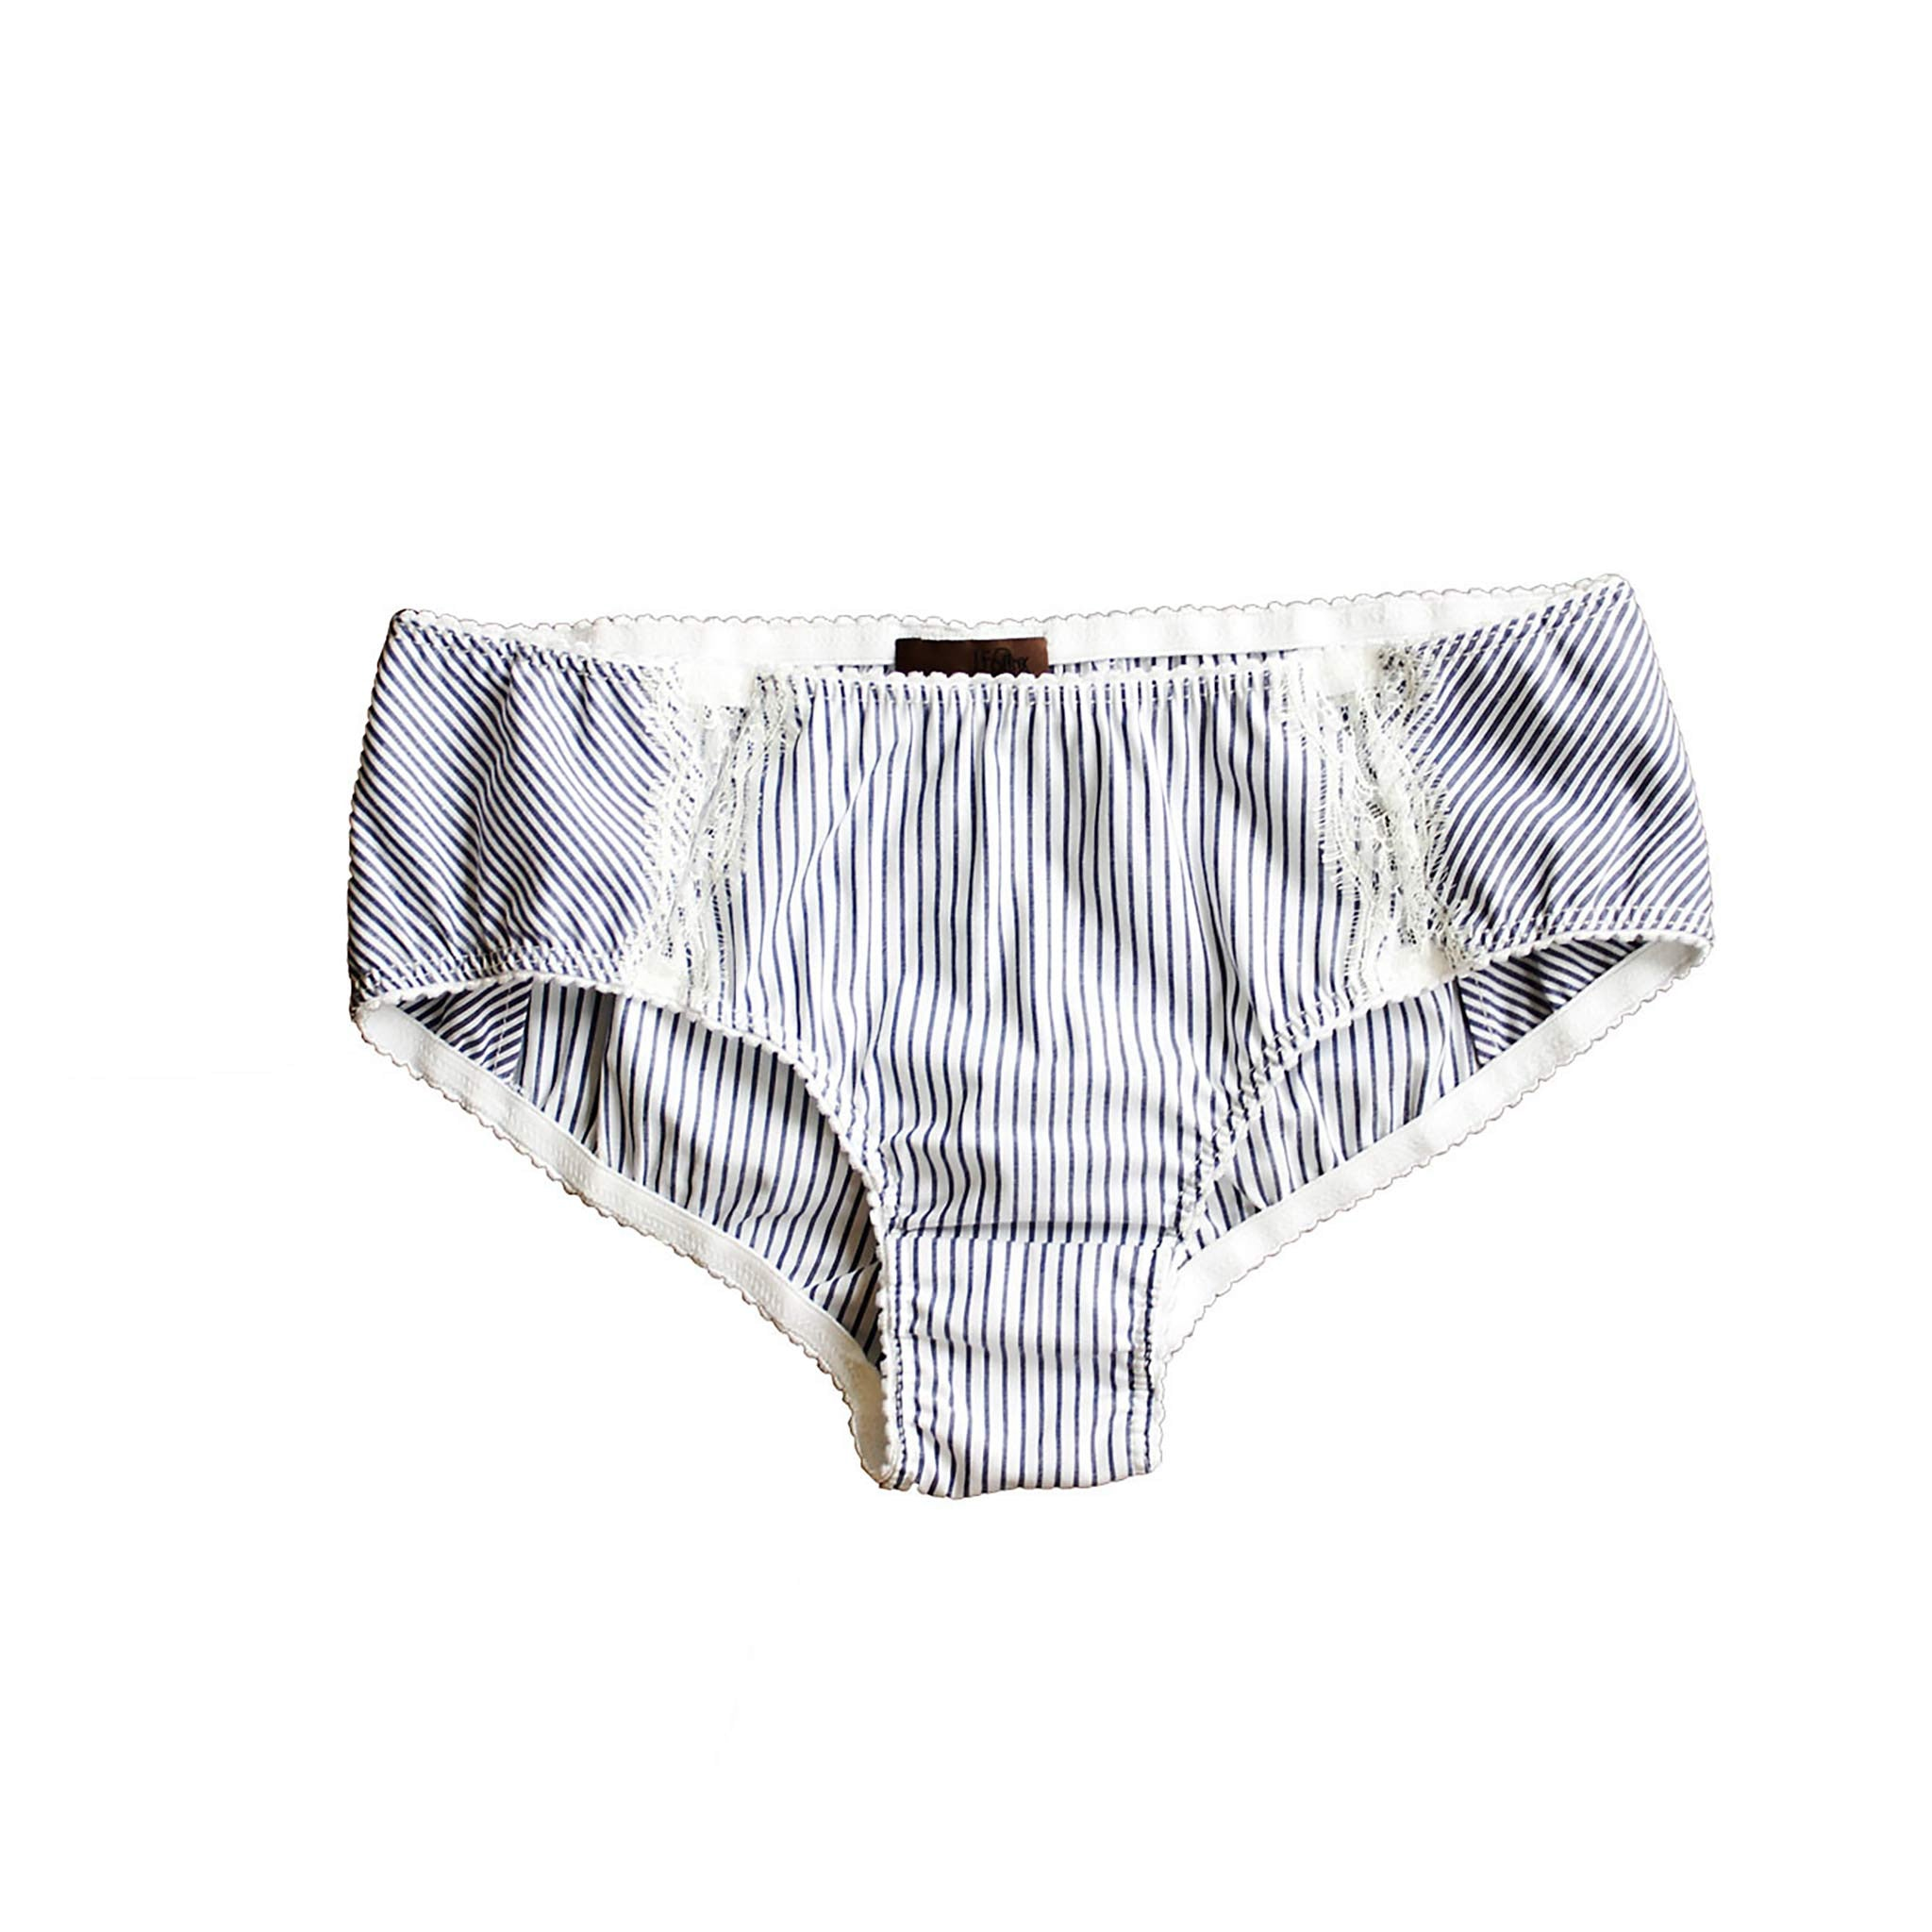 Hera Brief in Striped Stetch Cotton